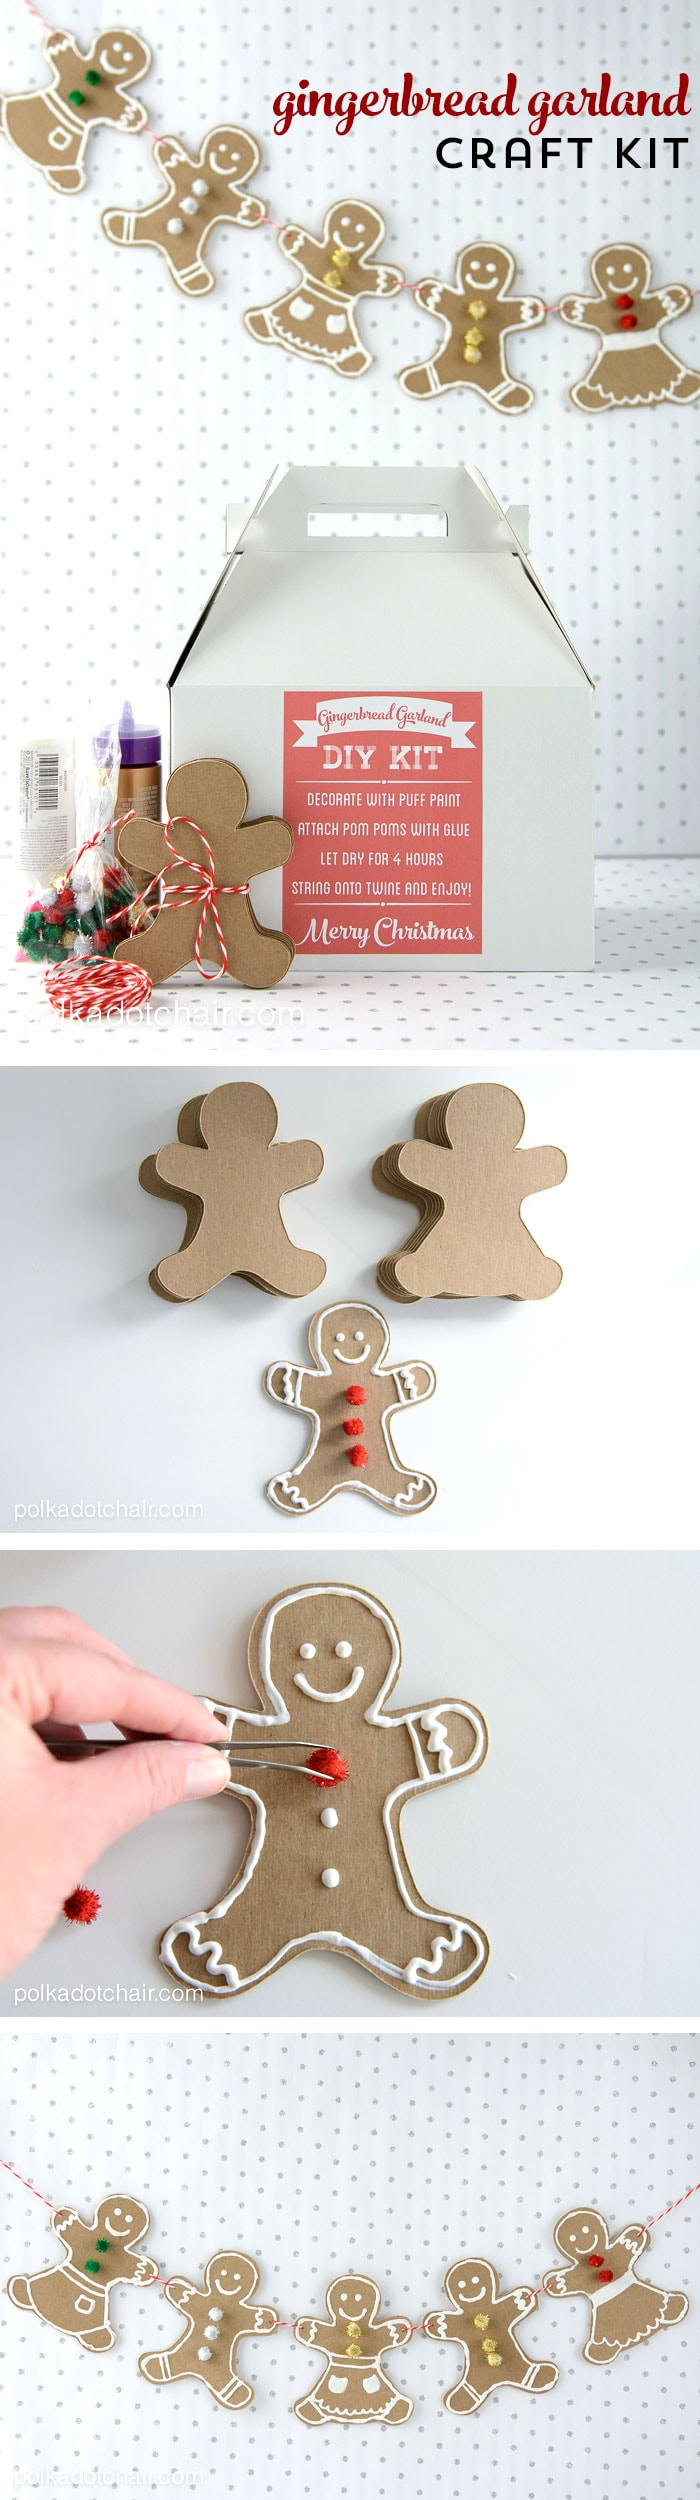 DIY Gingerbread Man Craft Kit For Christmas